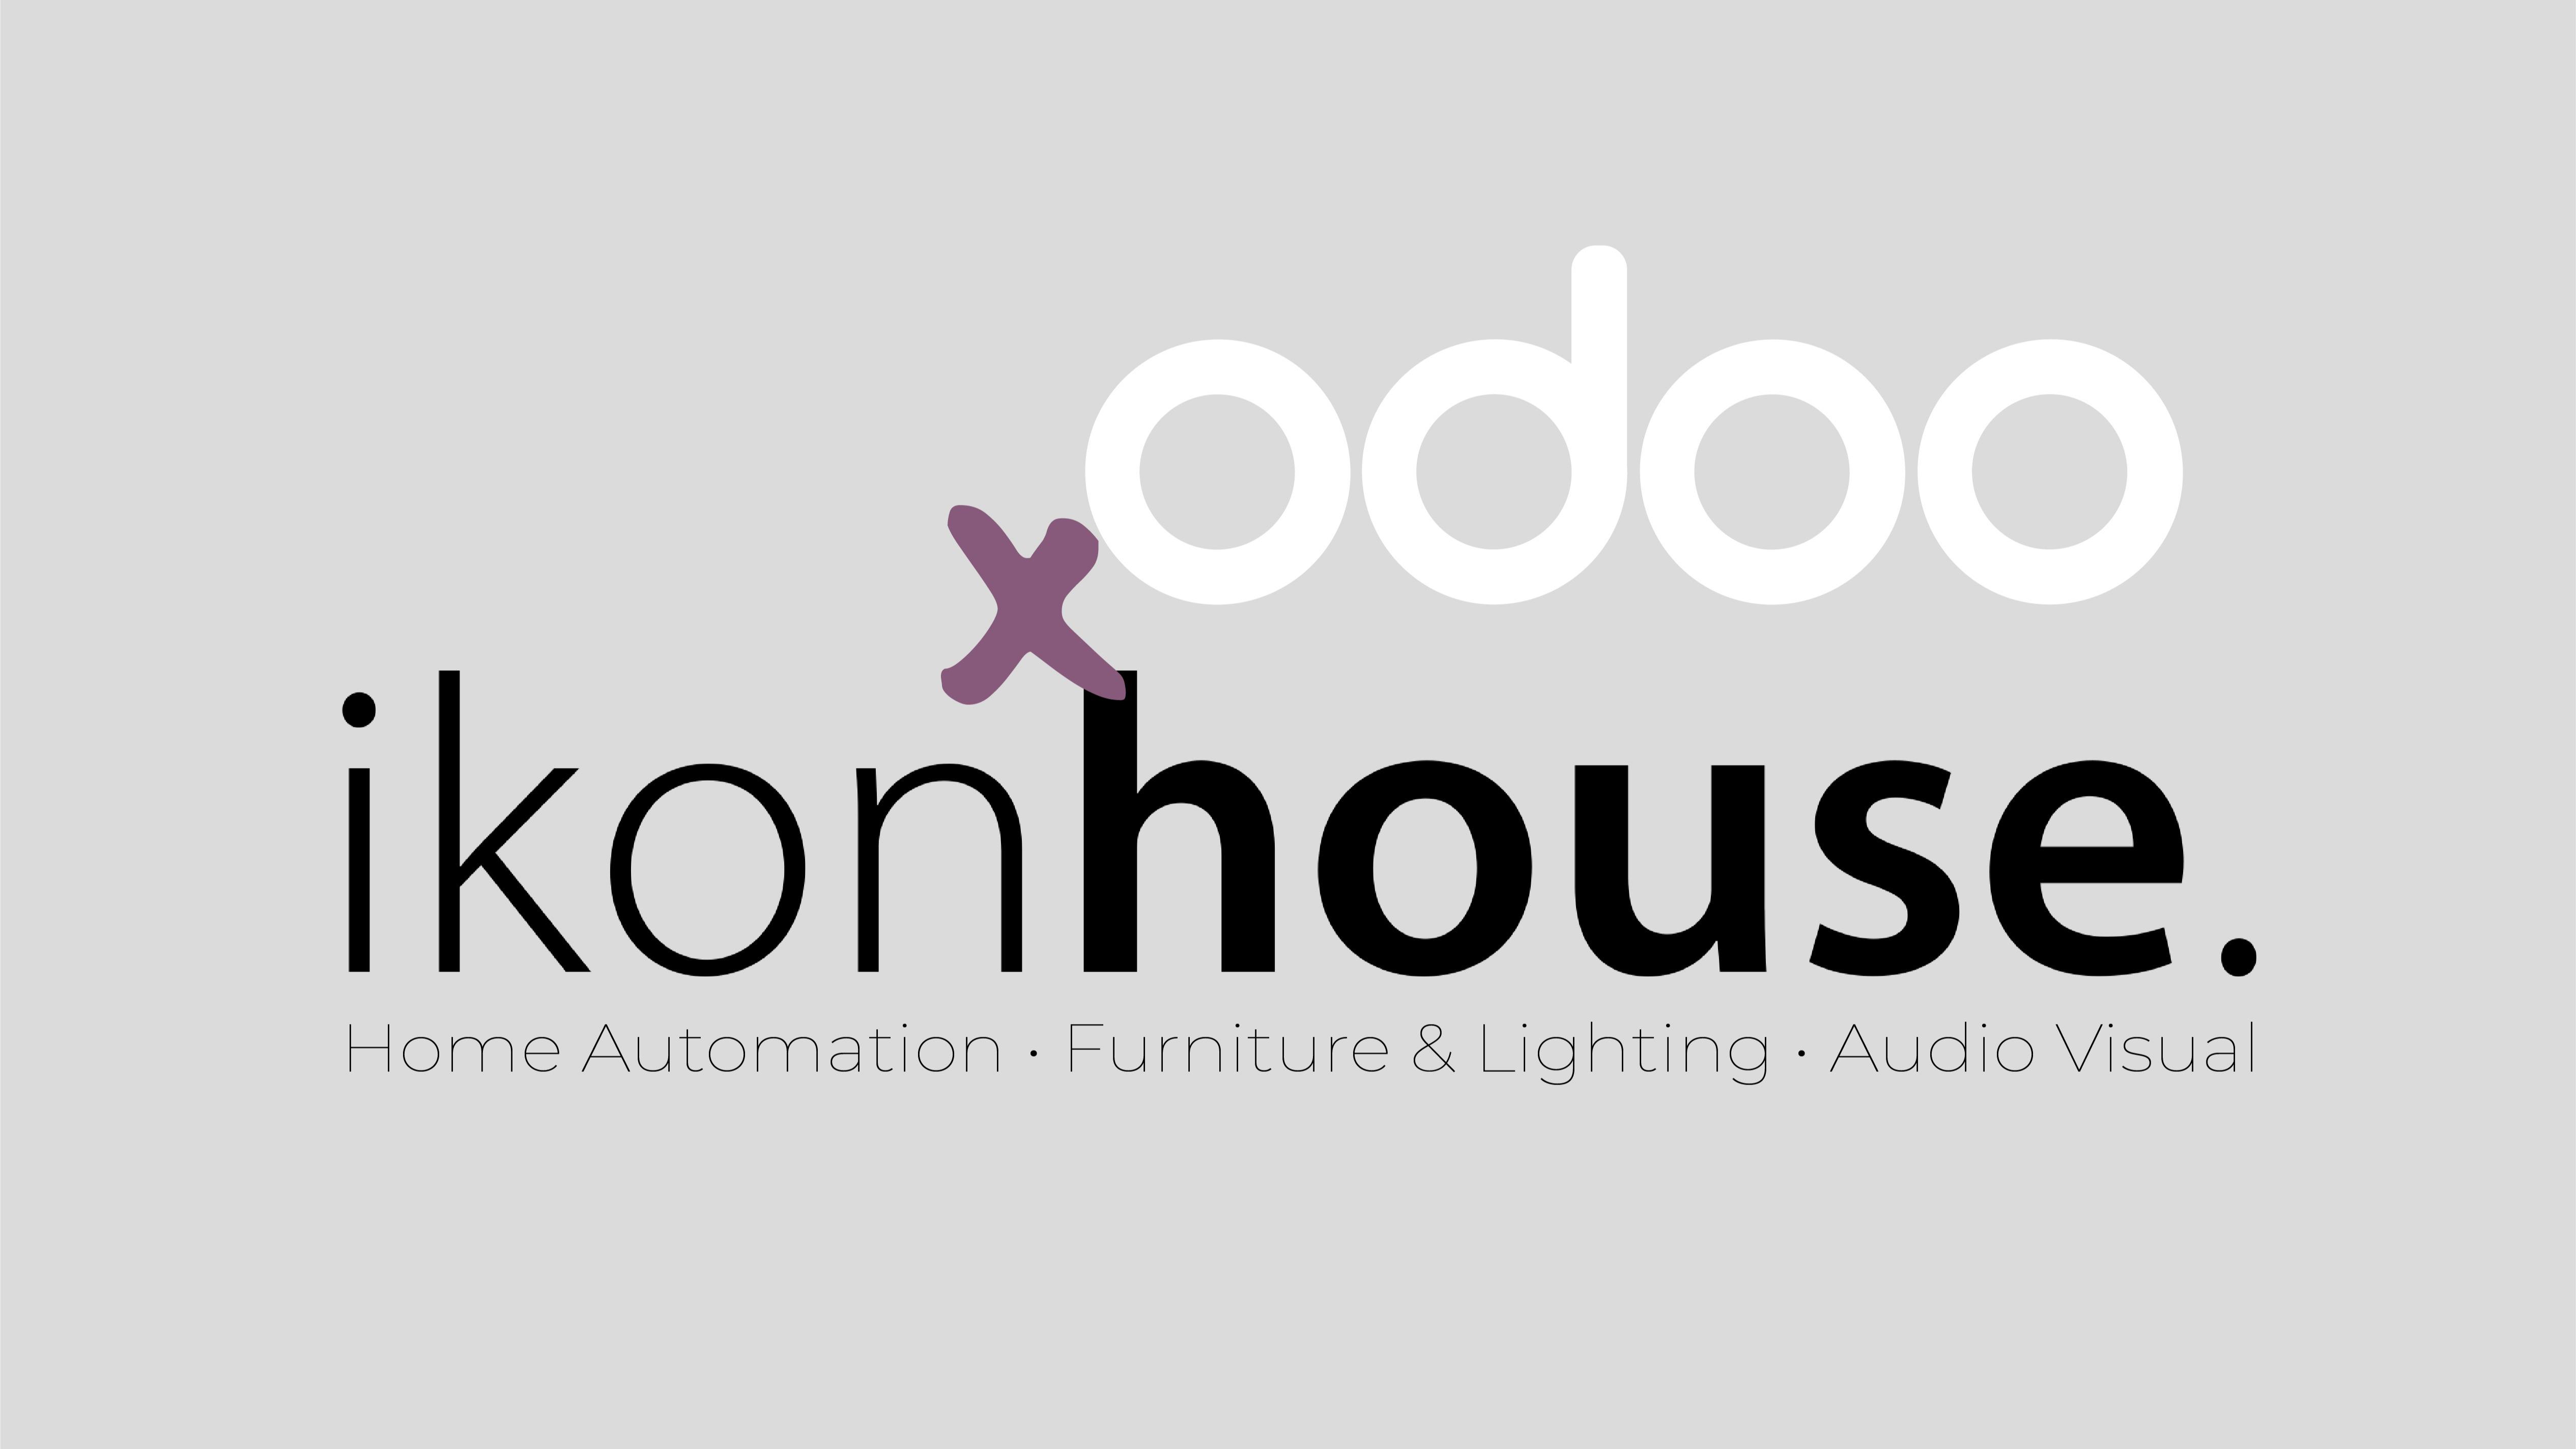 ikonhouse: From Manual to Optimal